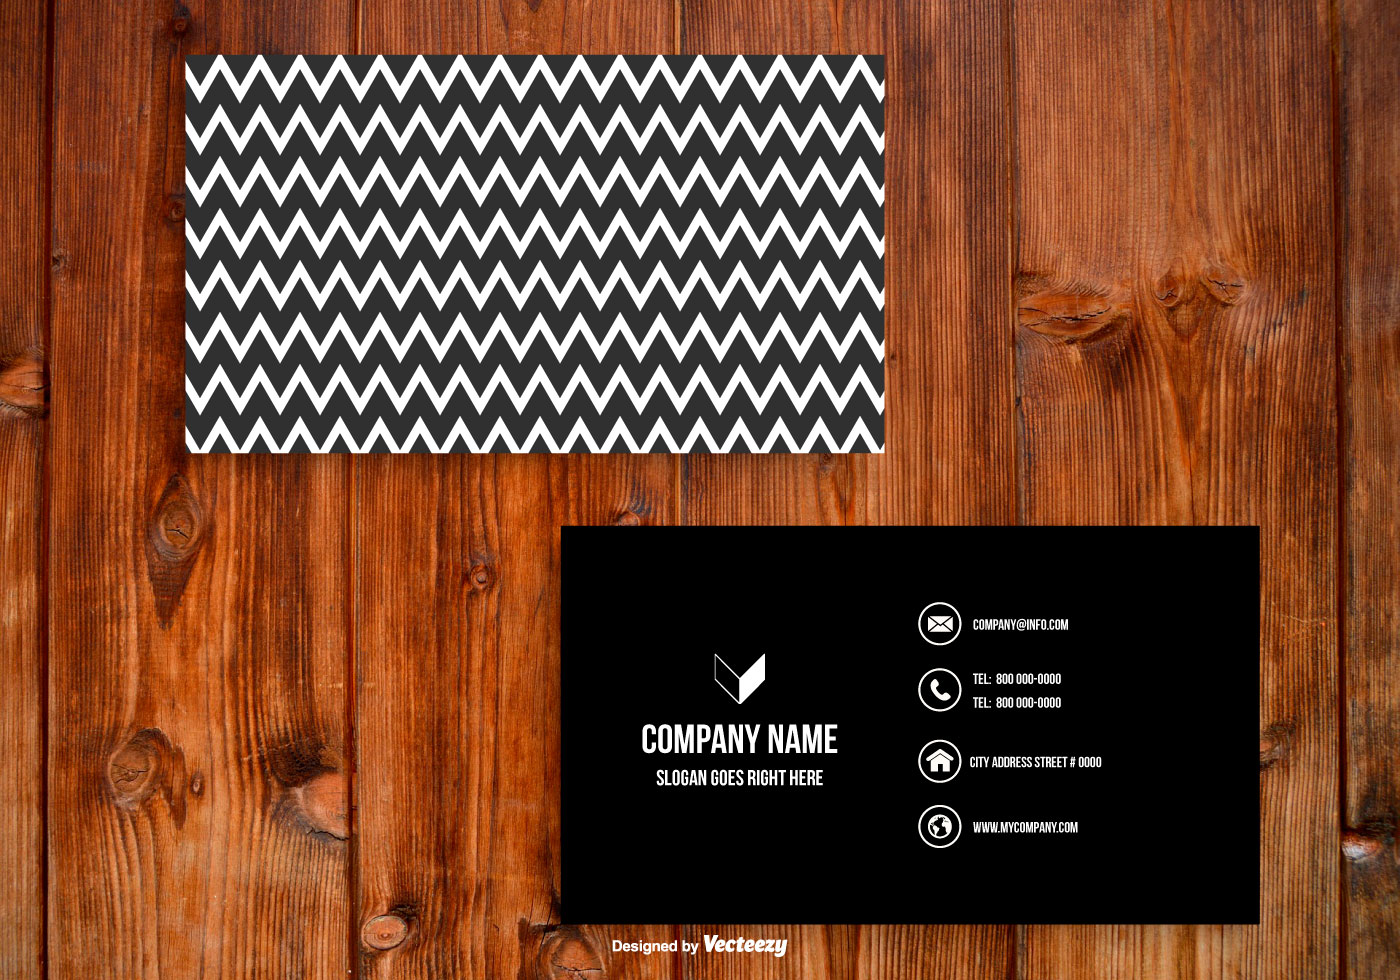 Black and White Chevron Business Card Template - Download Free ...